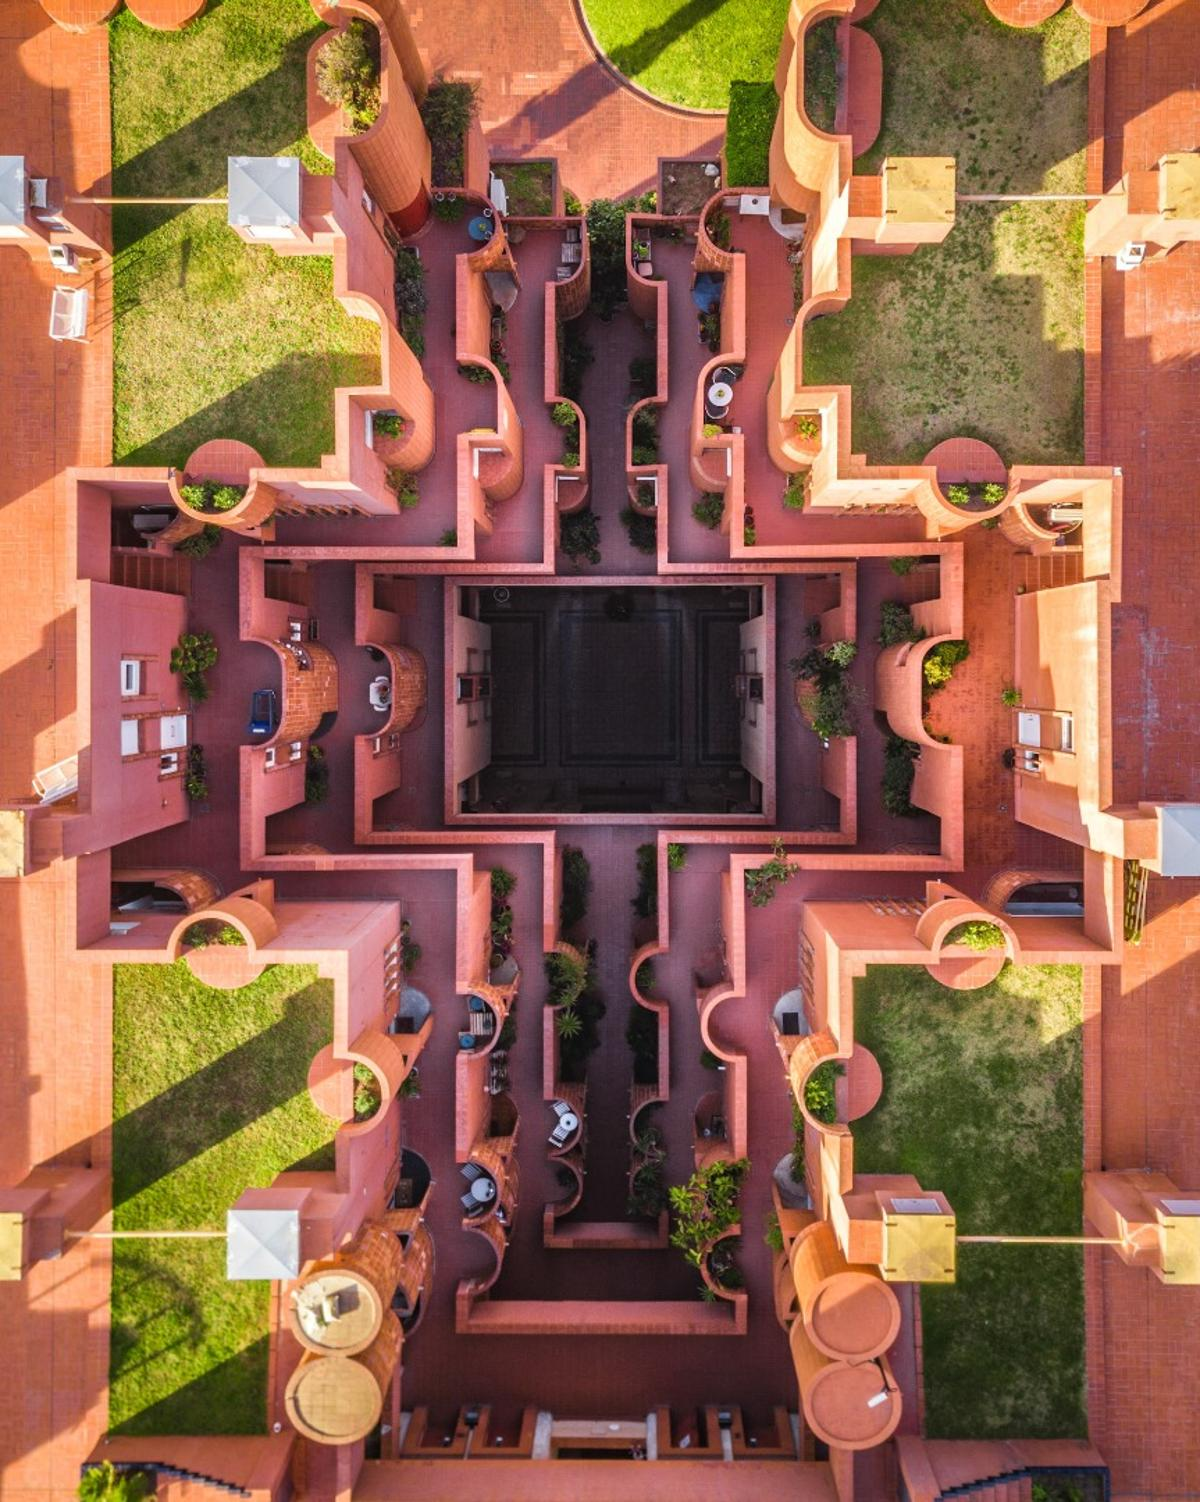 Ricardo Bofill's Walden 7 in Barcelona captured from above